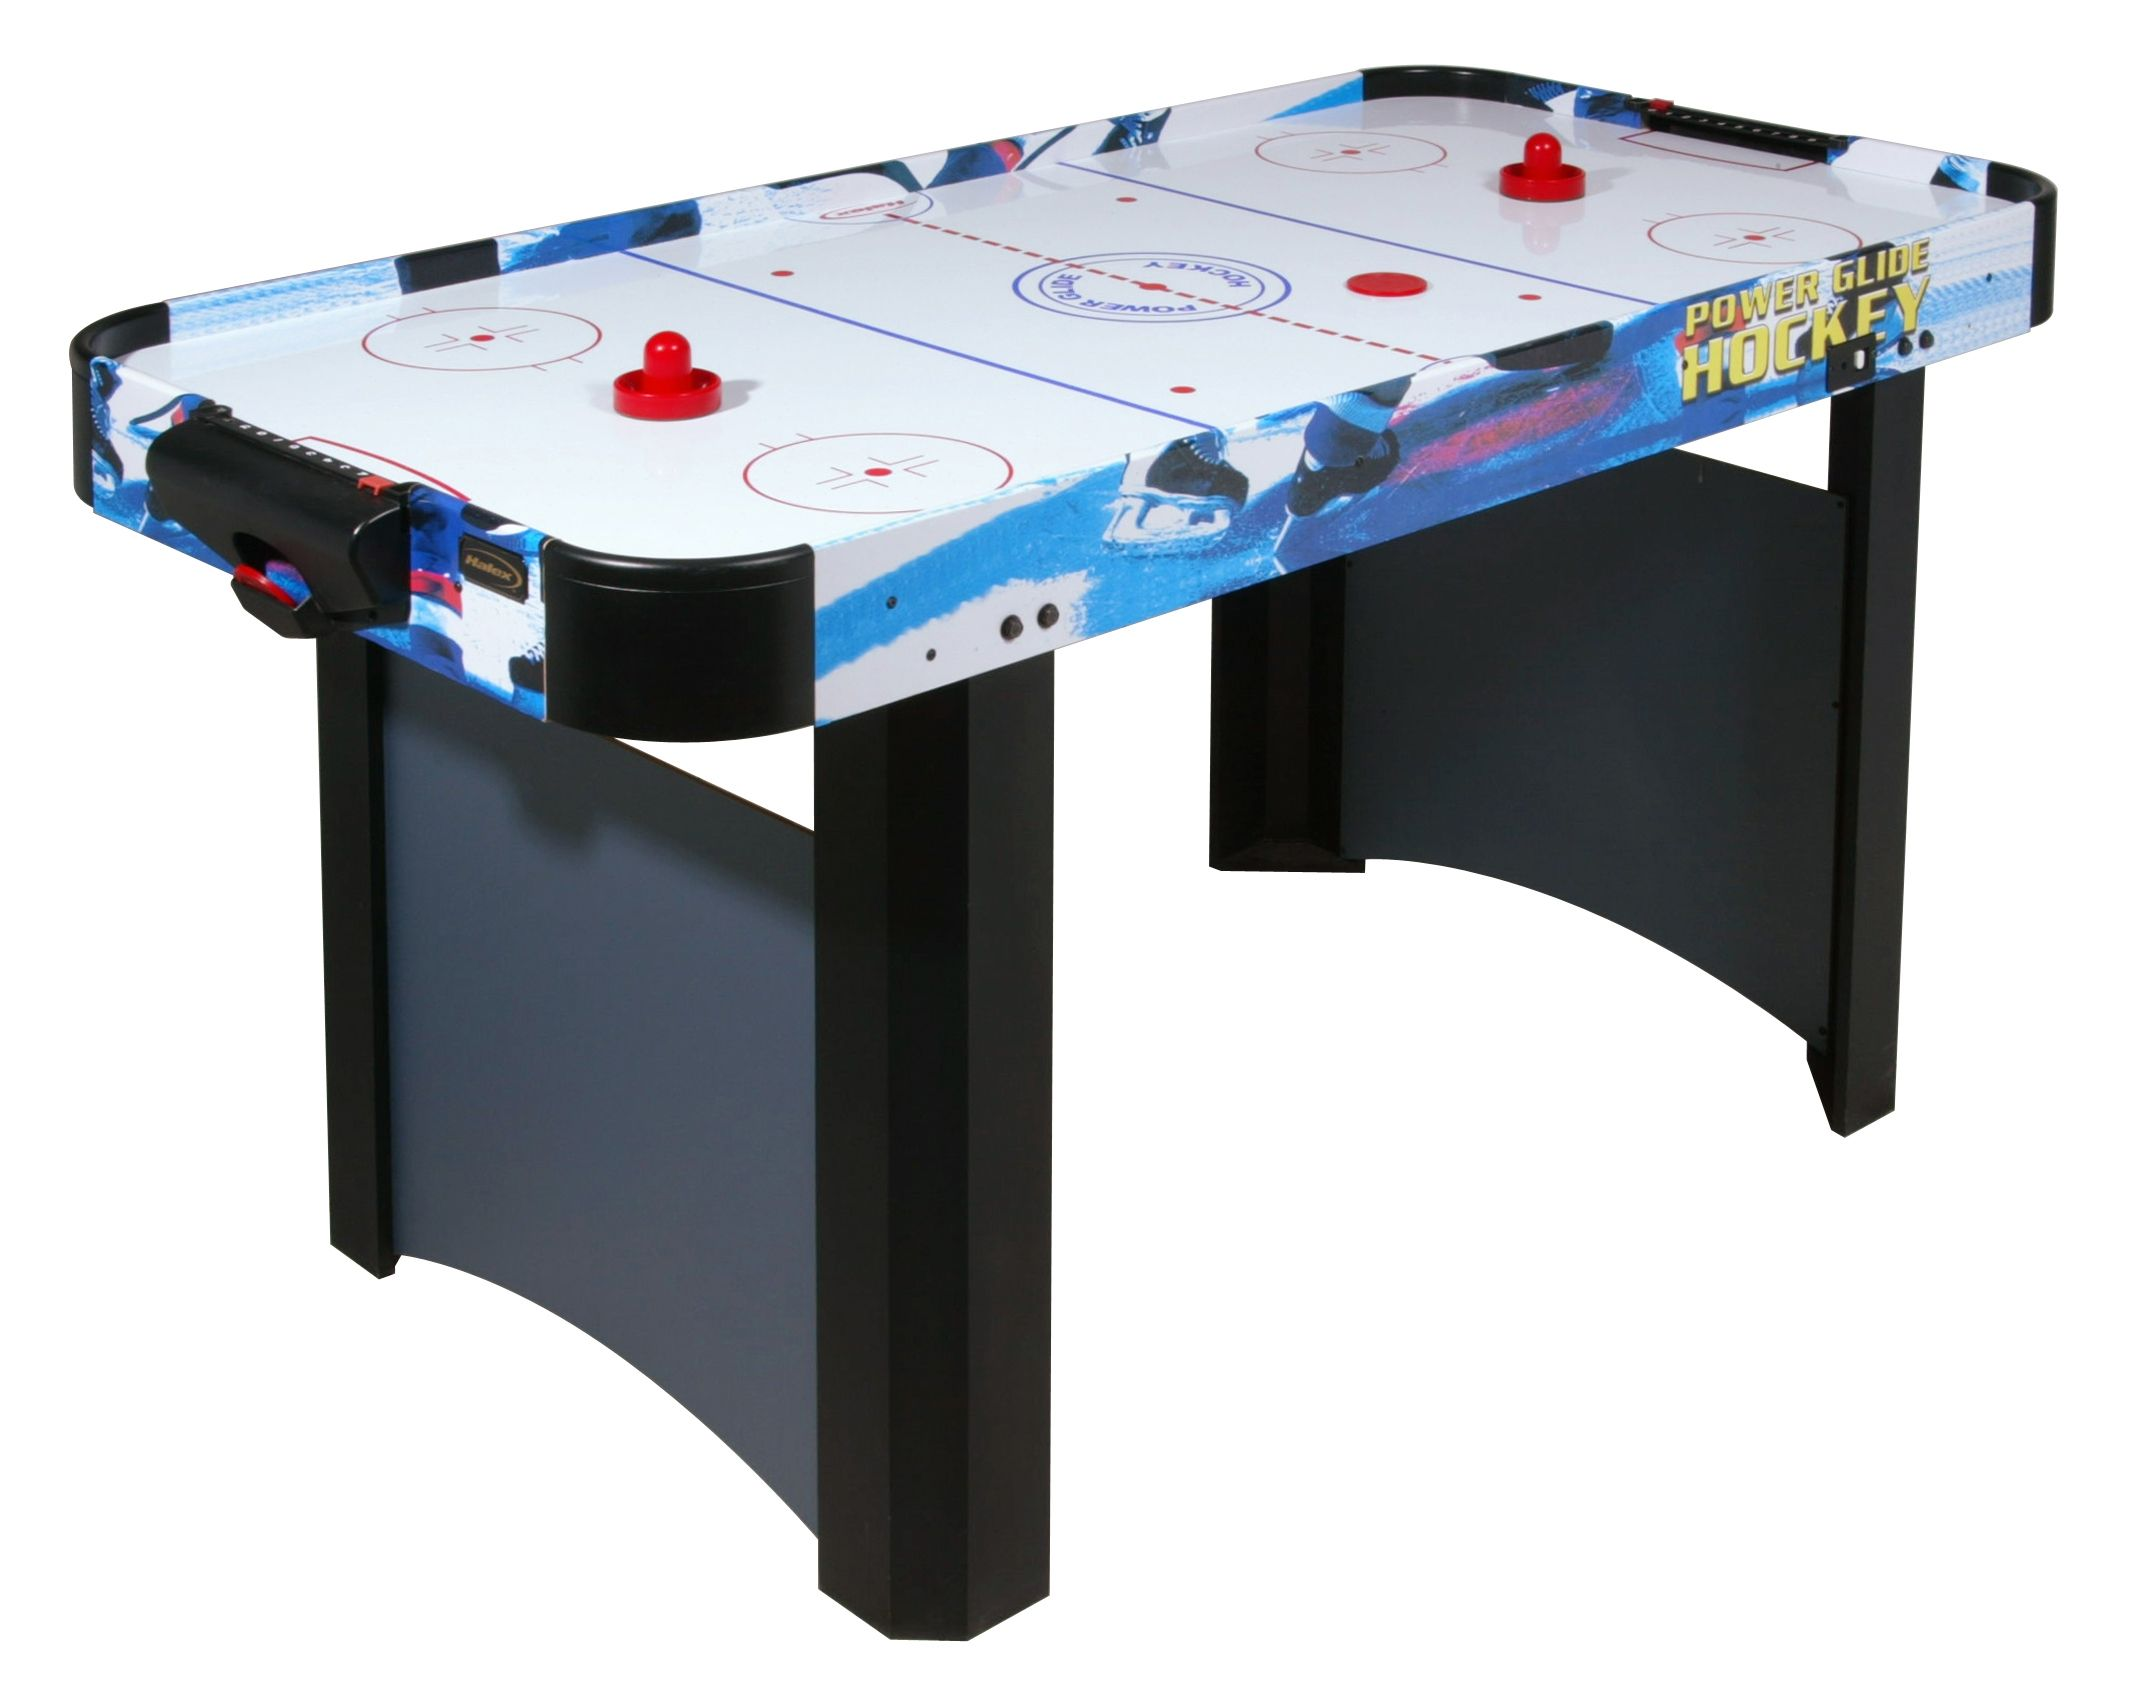 Air hockey tables game tables lots of competitive fun for Table hockey